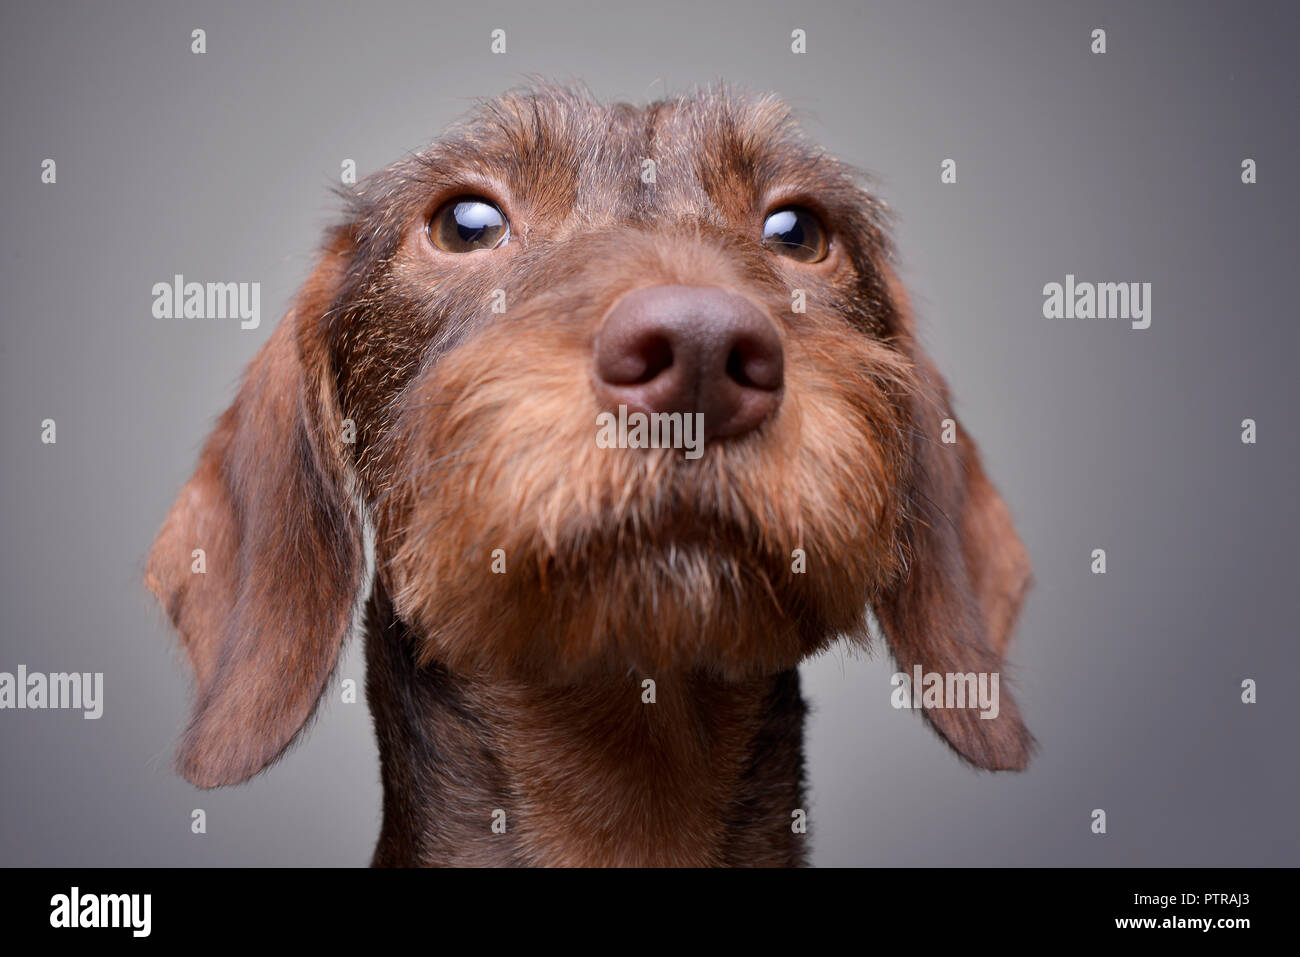 Portrait Of A Cute Dachshund Puppy Studio Shot Isolated On Grey Stock Photo Alamy